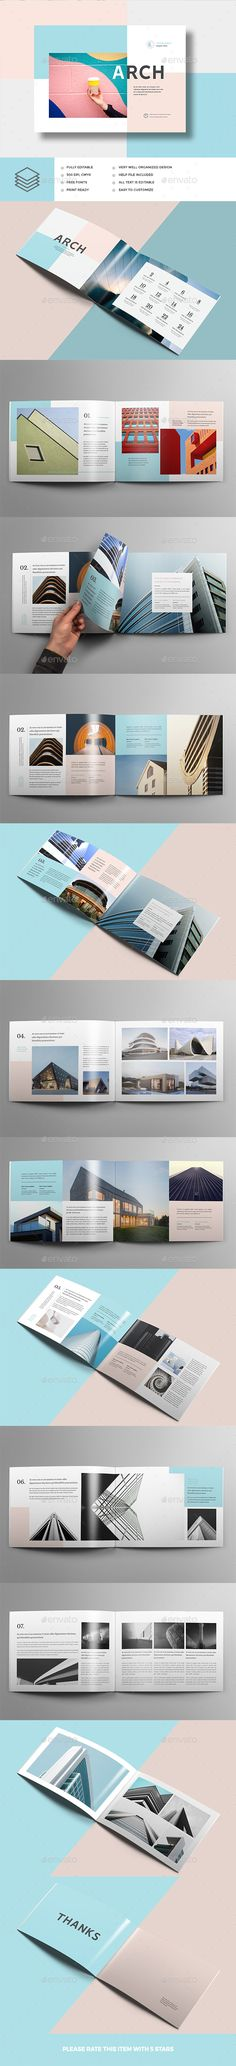 Modern Architecture Brochure 24 Pages A4 & A5 - Brochures Print Templates    #Trifold-Creative-Brochure #TrifoldCreativeBrochure #Trifold #CreativeBrochure  #Brochures #modern-Brochures #template #PrintTemplates   #graphicriver #Print #Templates #Business #Creative #Design #trifoldbrochure #portfolio  #sellfy #Creative  #Modern #Company #Profile  #magazine #Brochure #bifoldbrochure #squaretrifoldbrochure